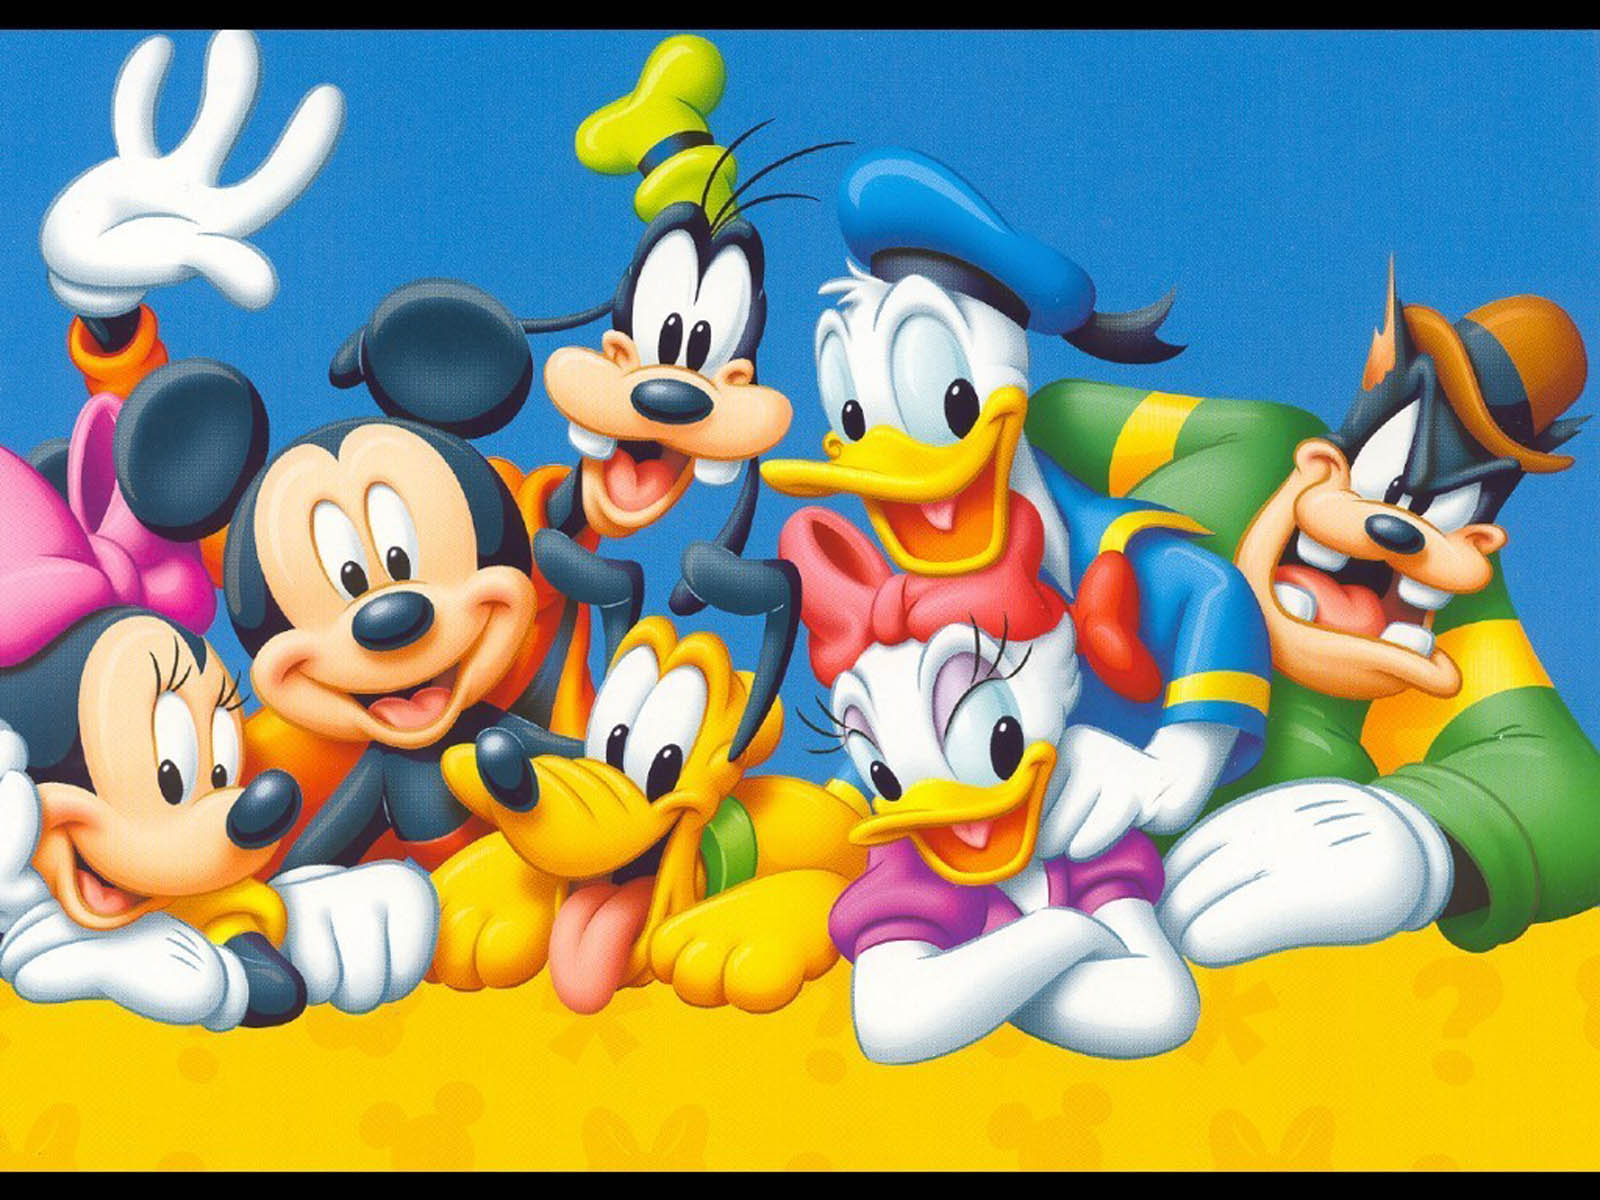 Mickey Mouse Wallpaper High Quality